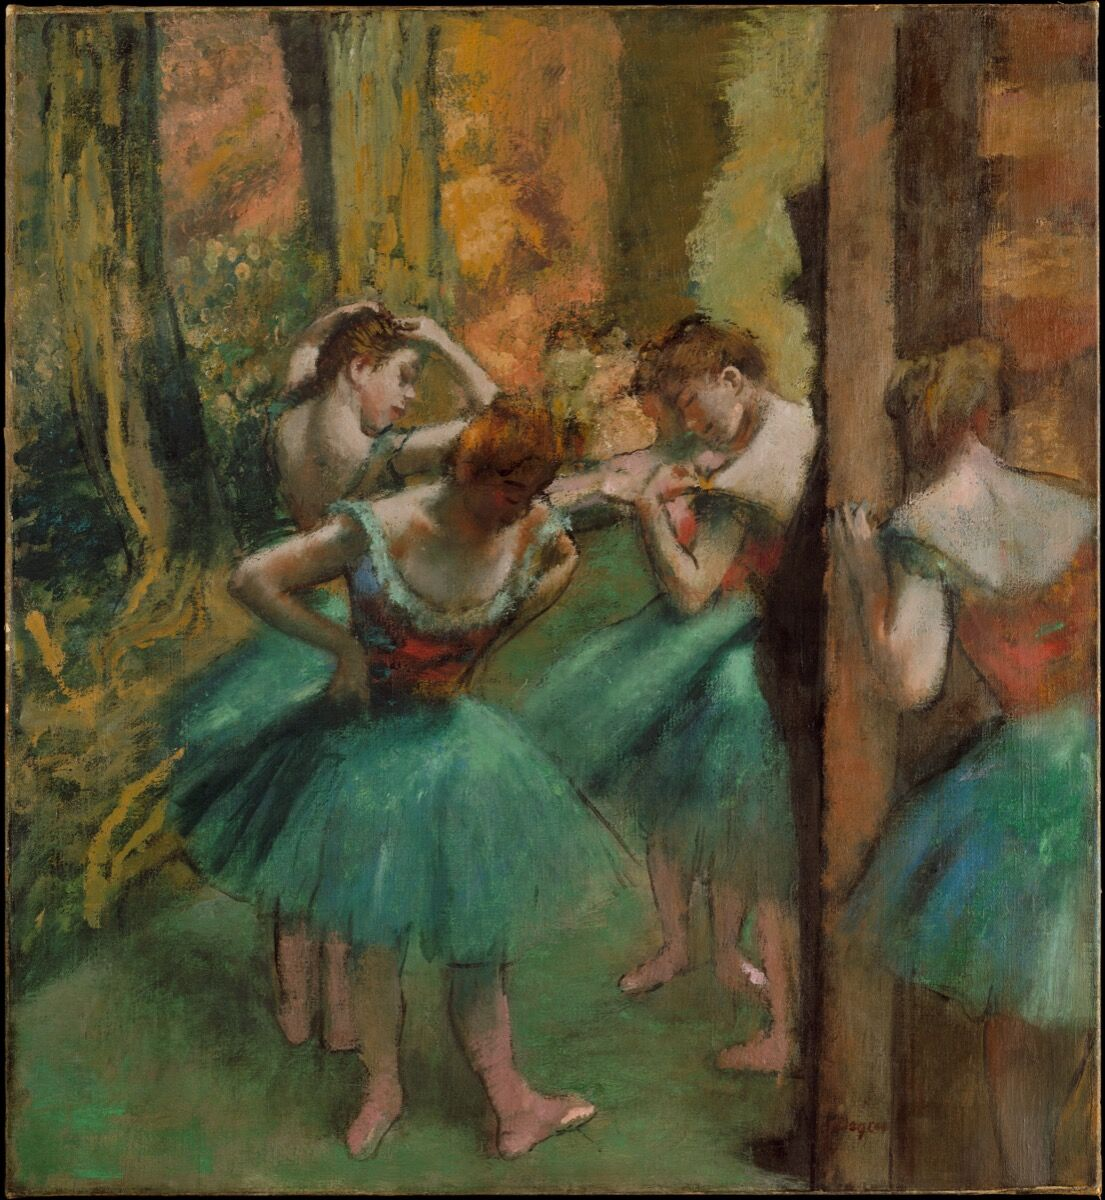 Edgar Degas, Dancers, Pink and Green, ca. 1890. Courtesy of the Metropolitan Museum of Art.